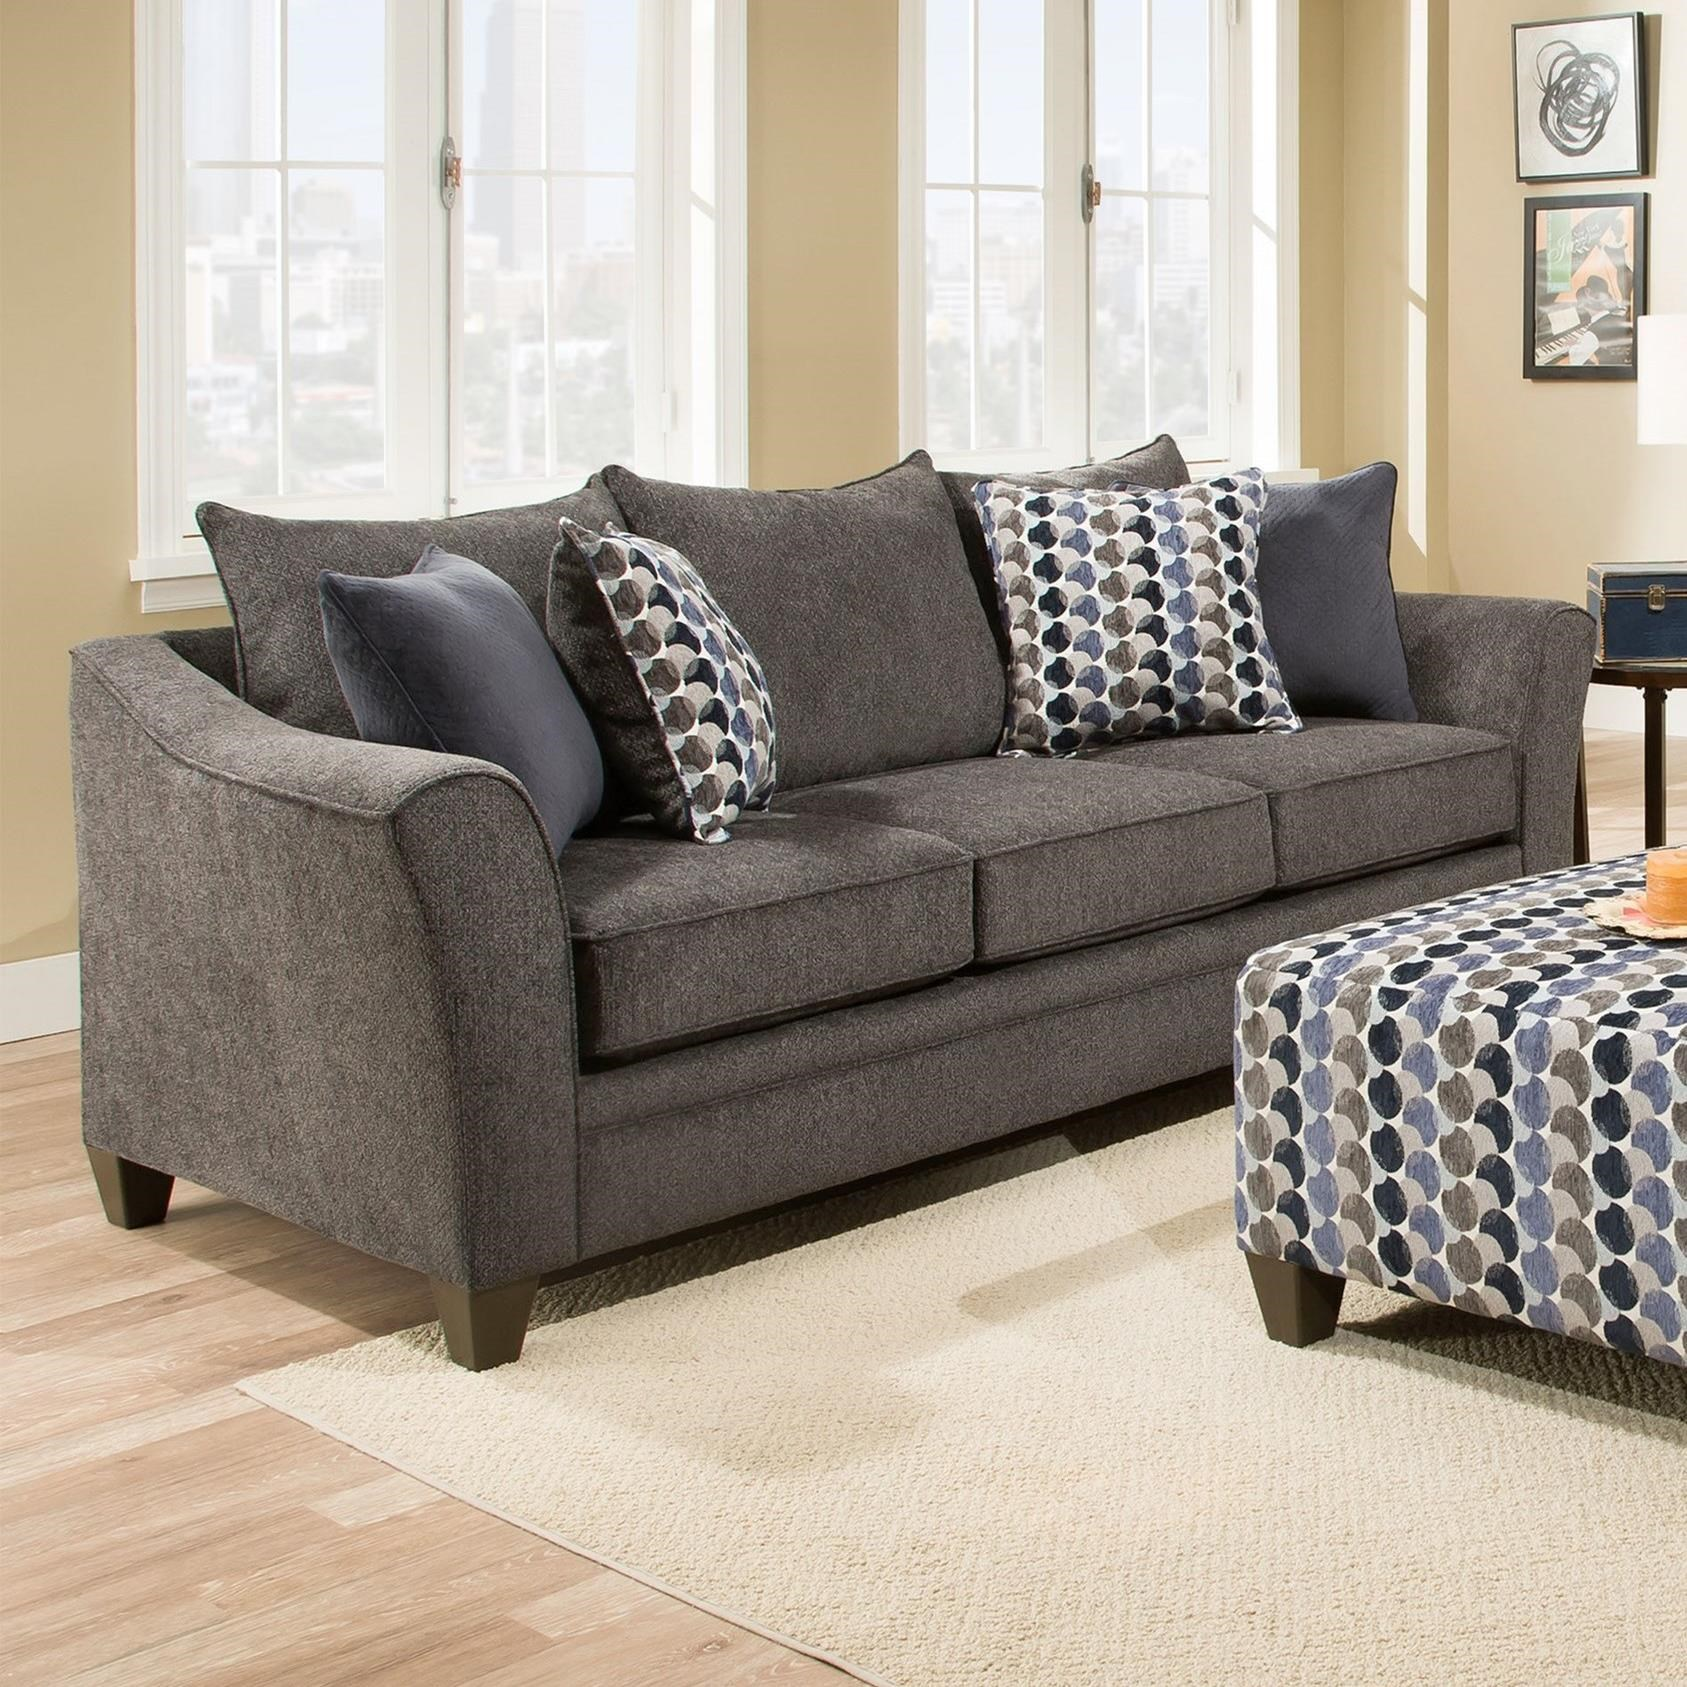 6485 Transitional Sofa by Simmons Upholstery at O'Dunk & O'Bright Furniture